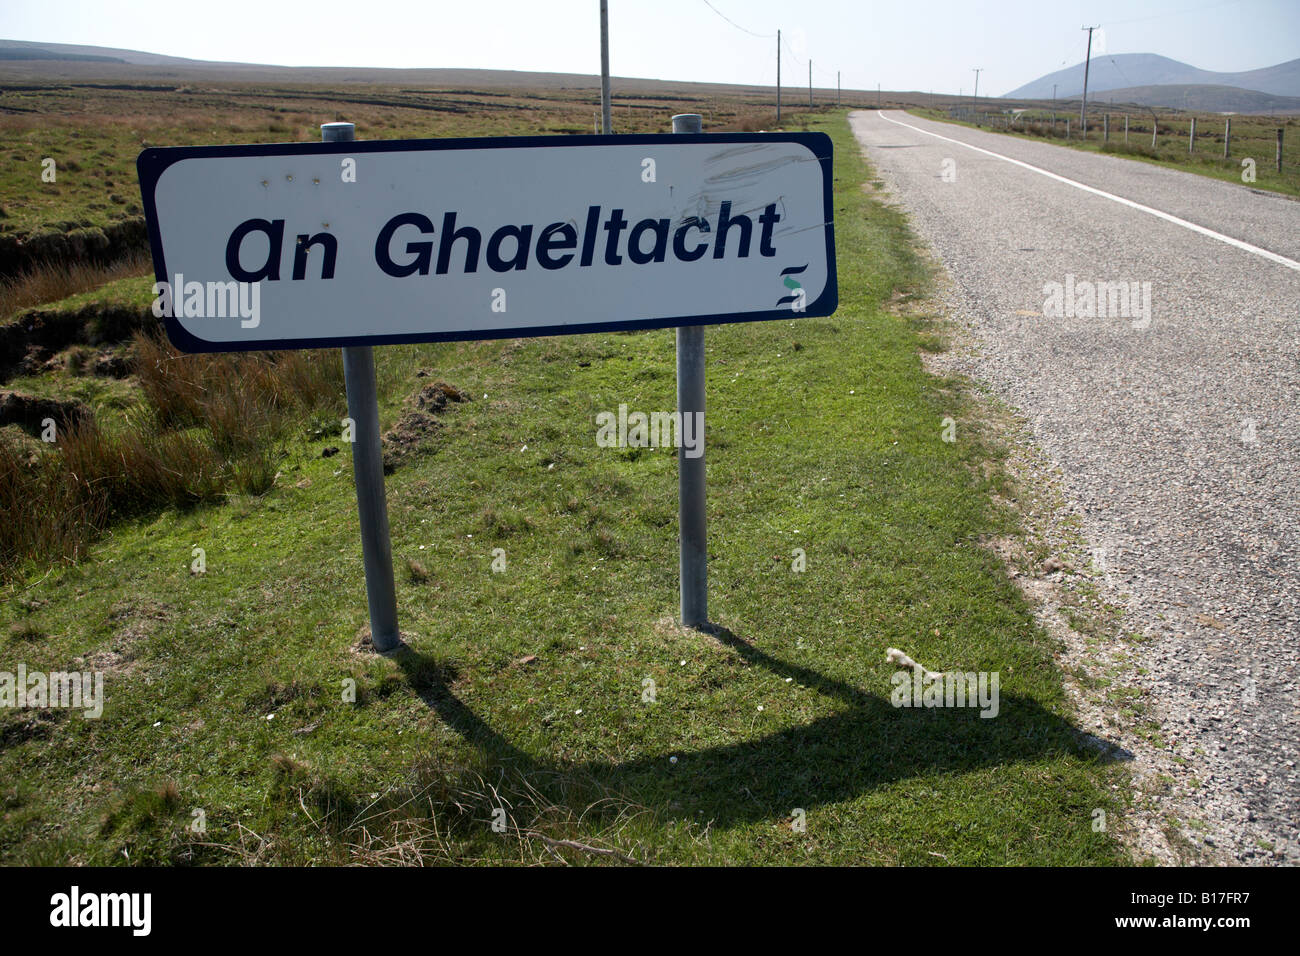 an ghaeltacht sign at side of road in north county mayo republic of ireland it signifies entrance irish gaelic speaking - Stock Image